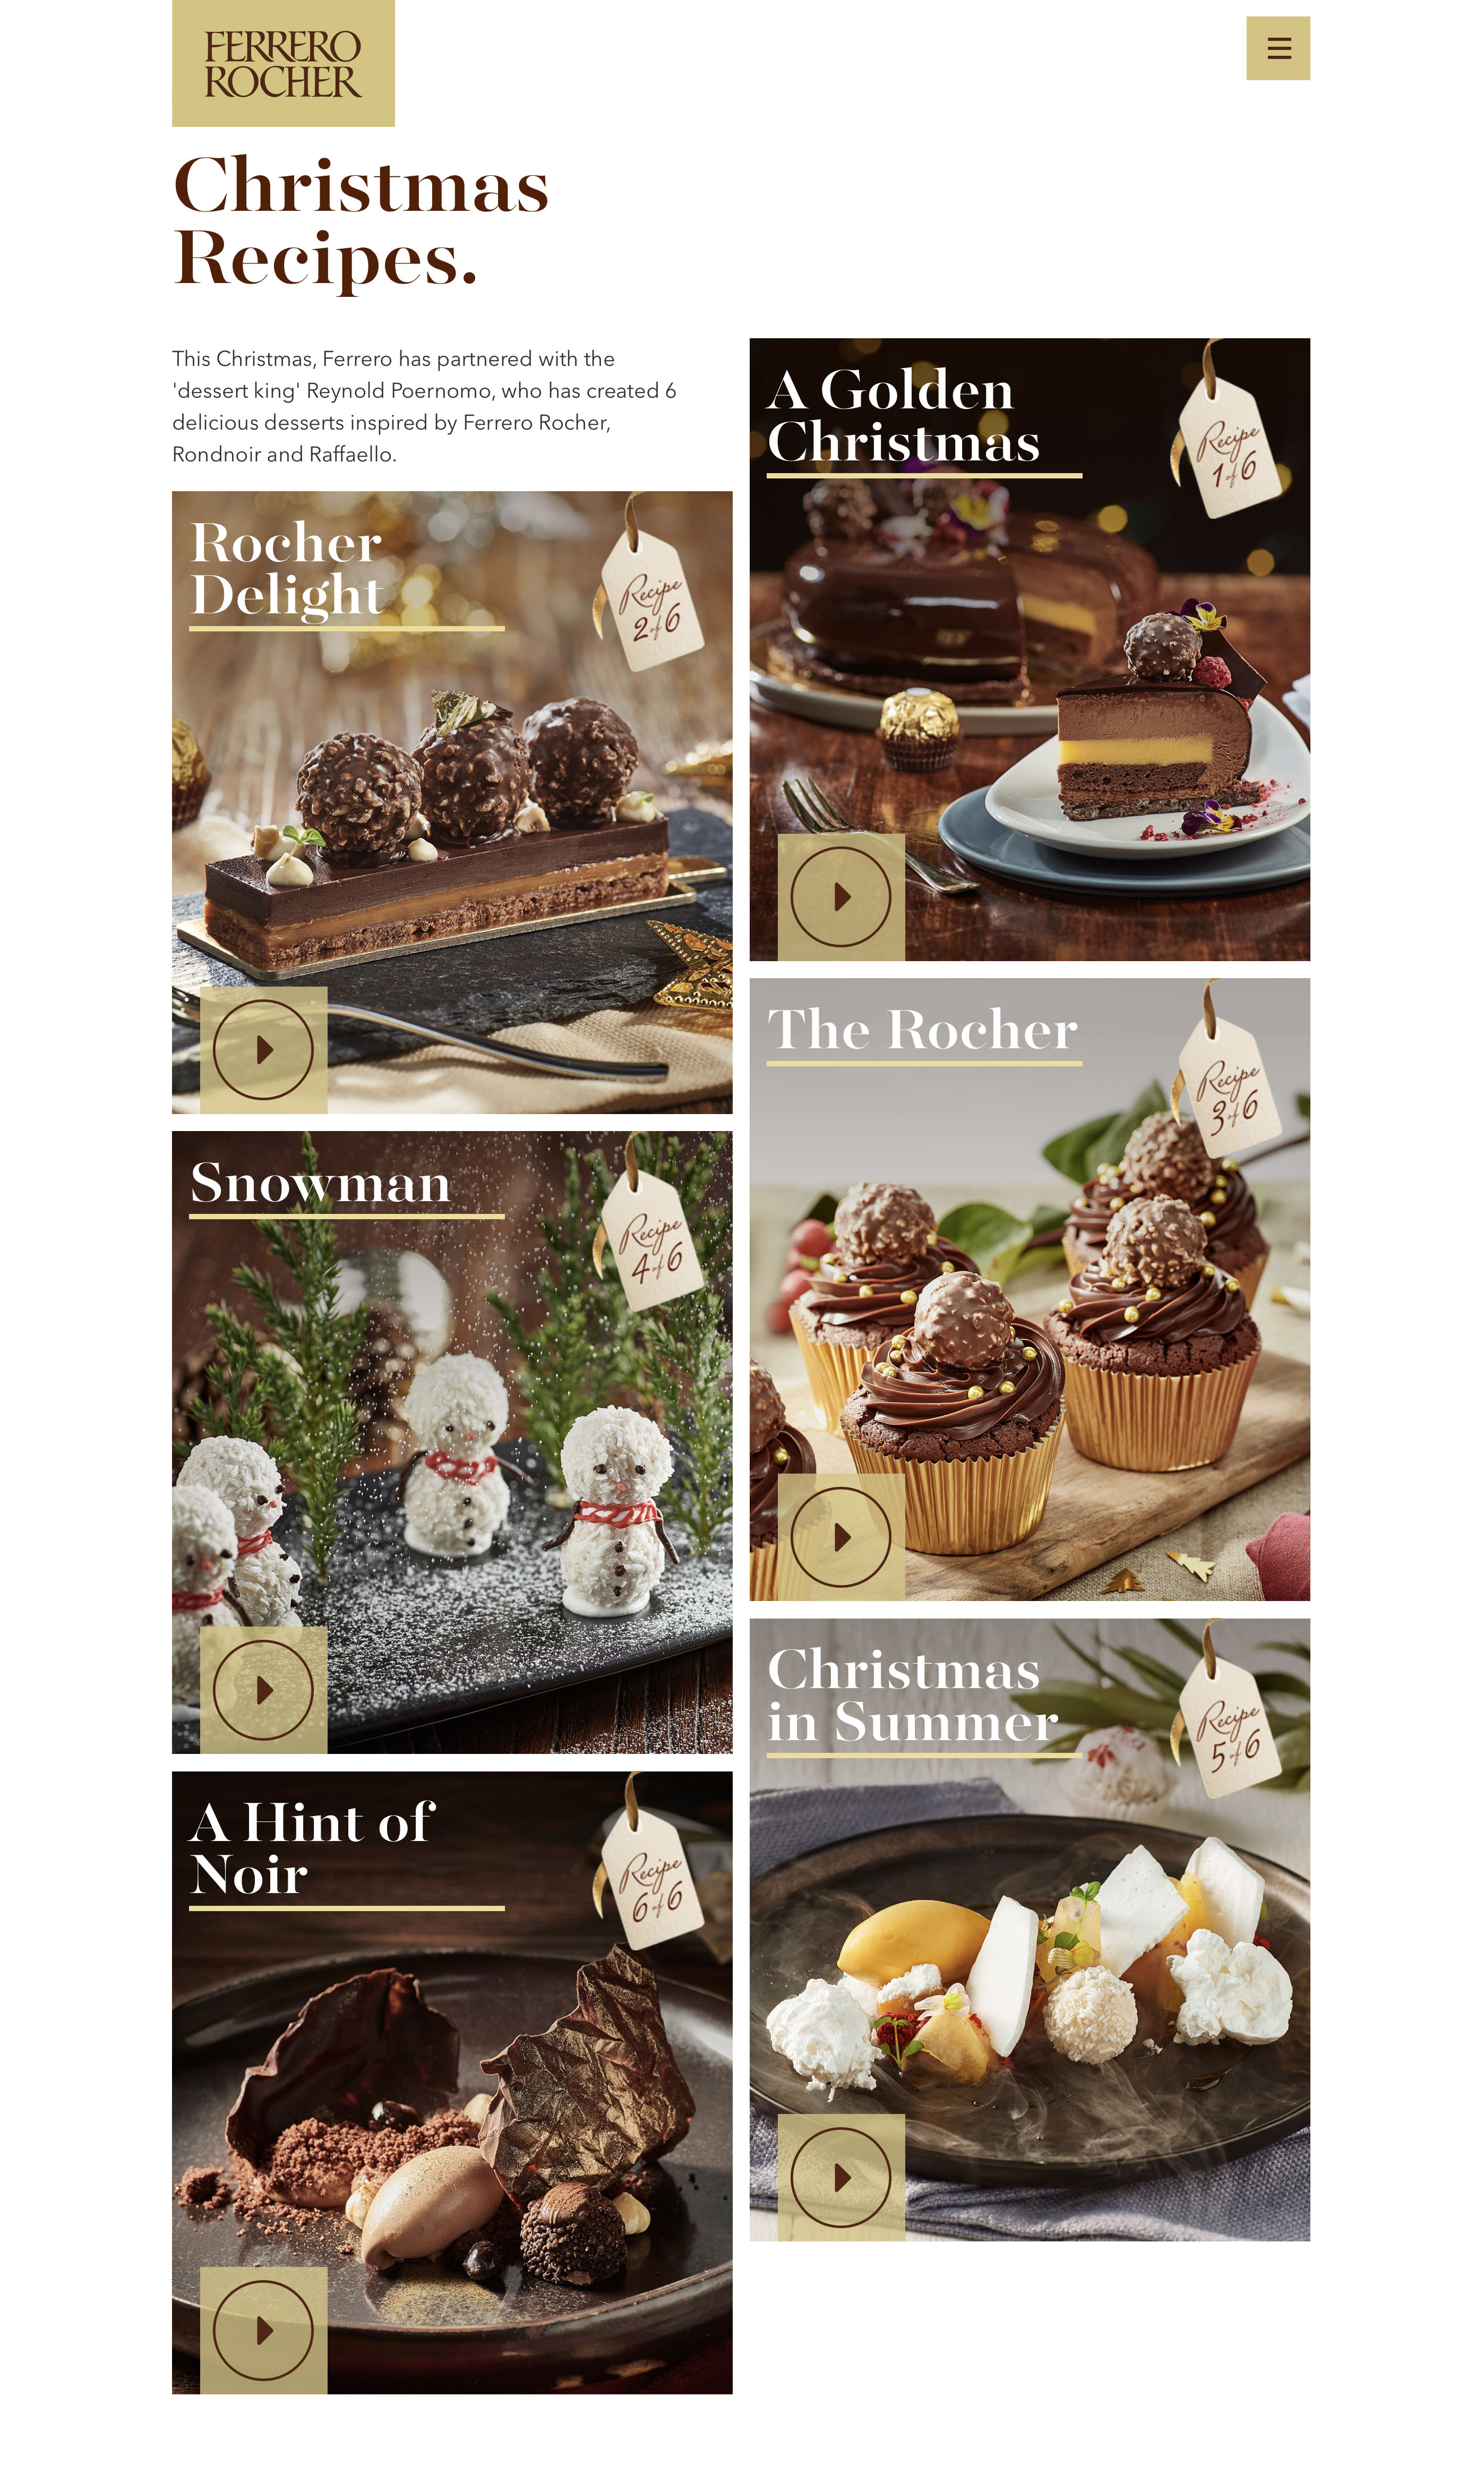 Ferrero Rocher Launches New Christmas Campaign With Dessert King